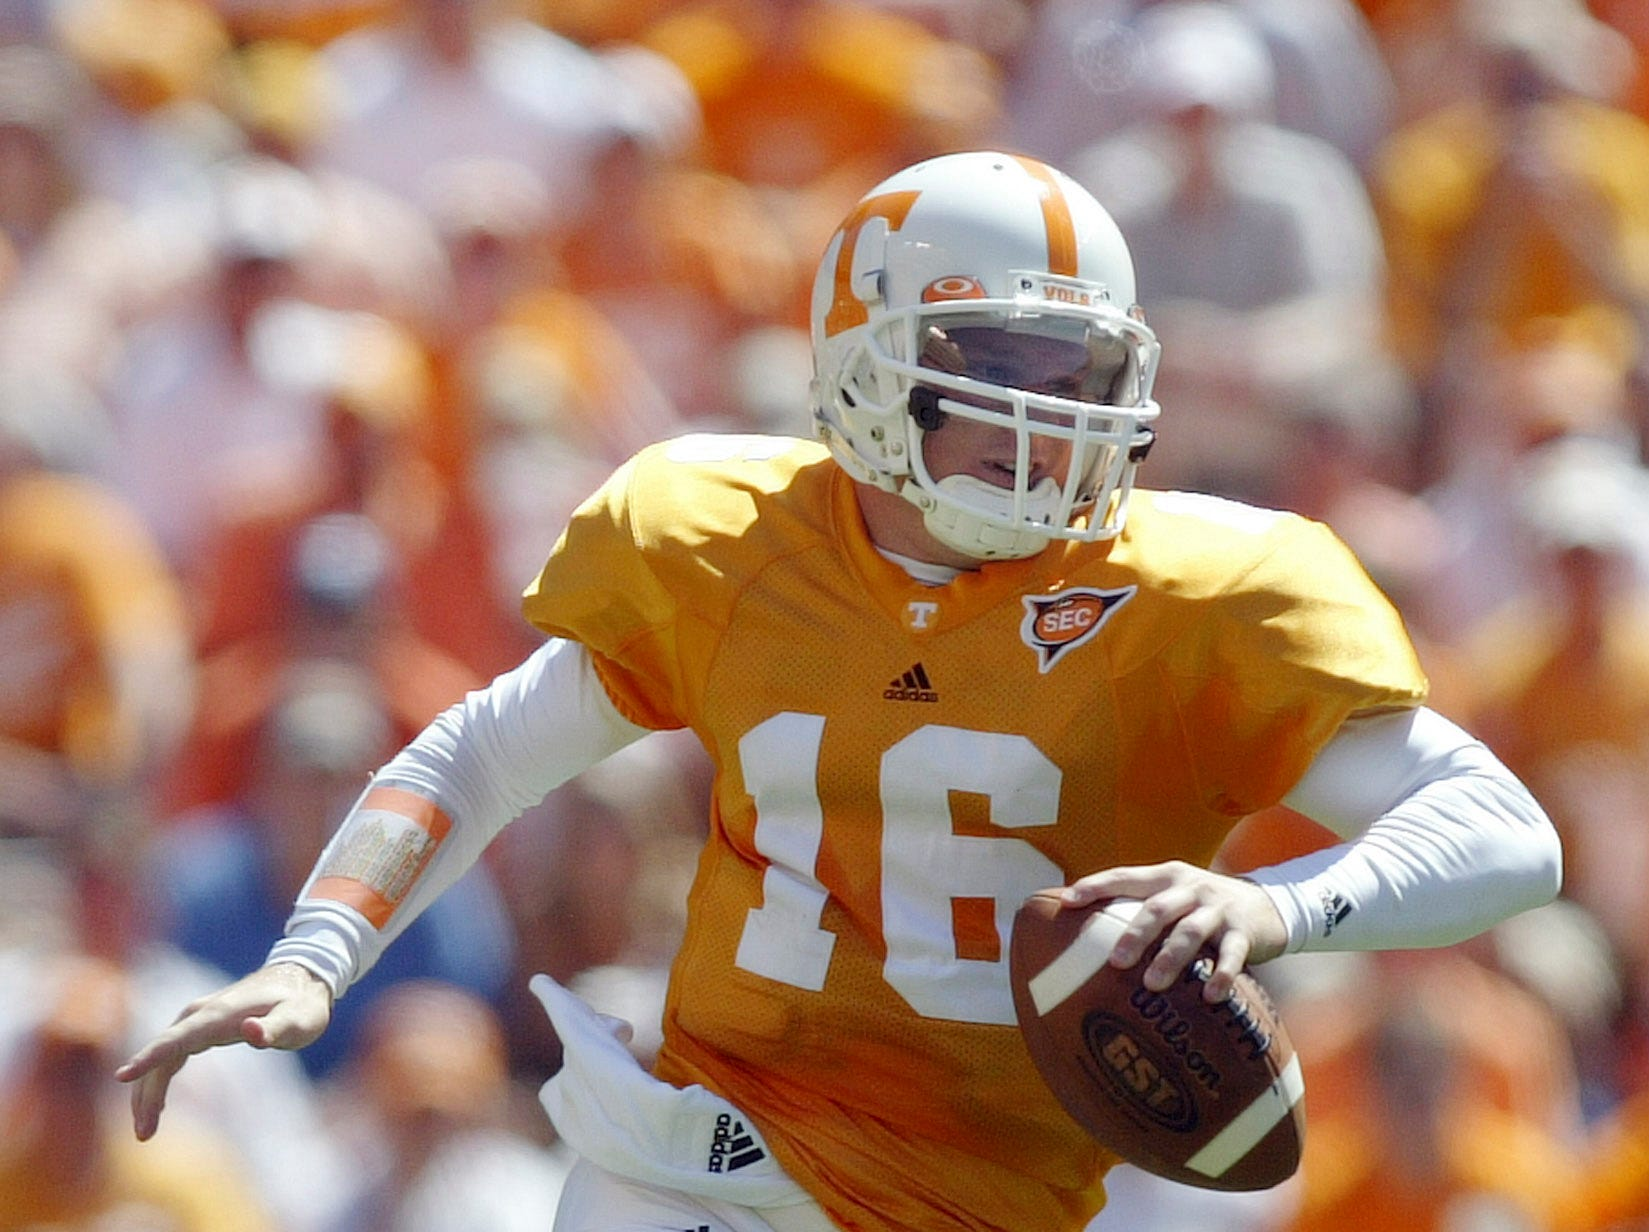 Tennessee quarterback Rick Clausen scrambles out of the pocket against UAB on Saturday at Neyland Stadium on Sept. 3, 2005.